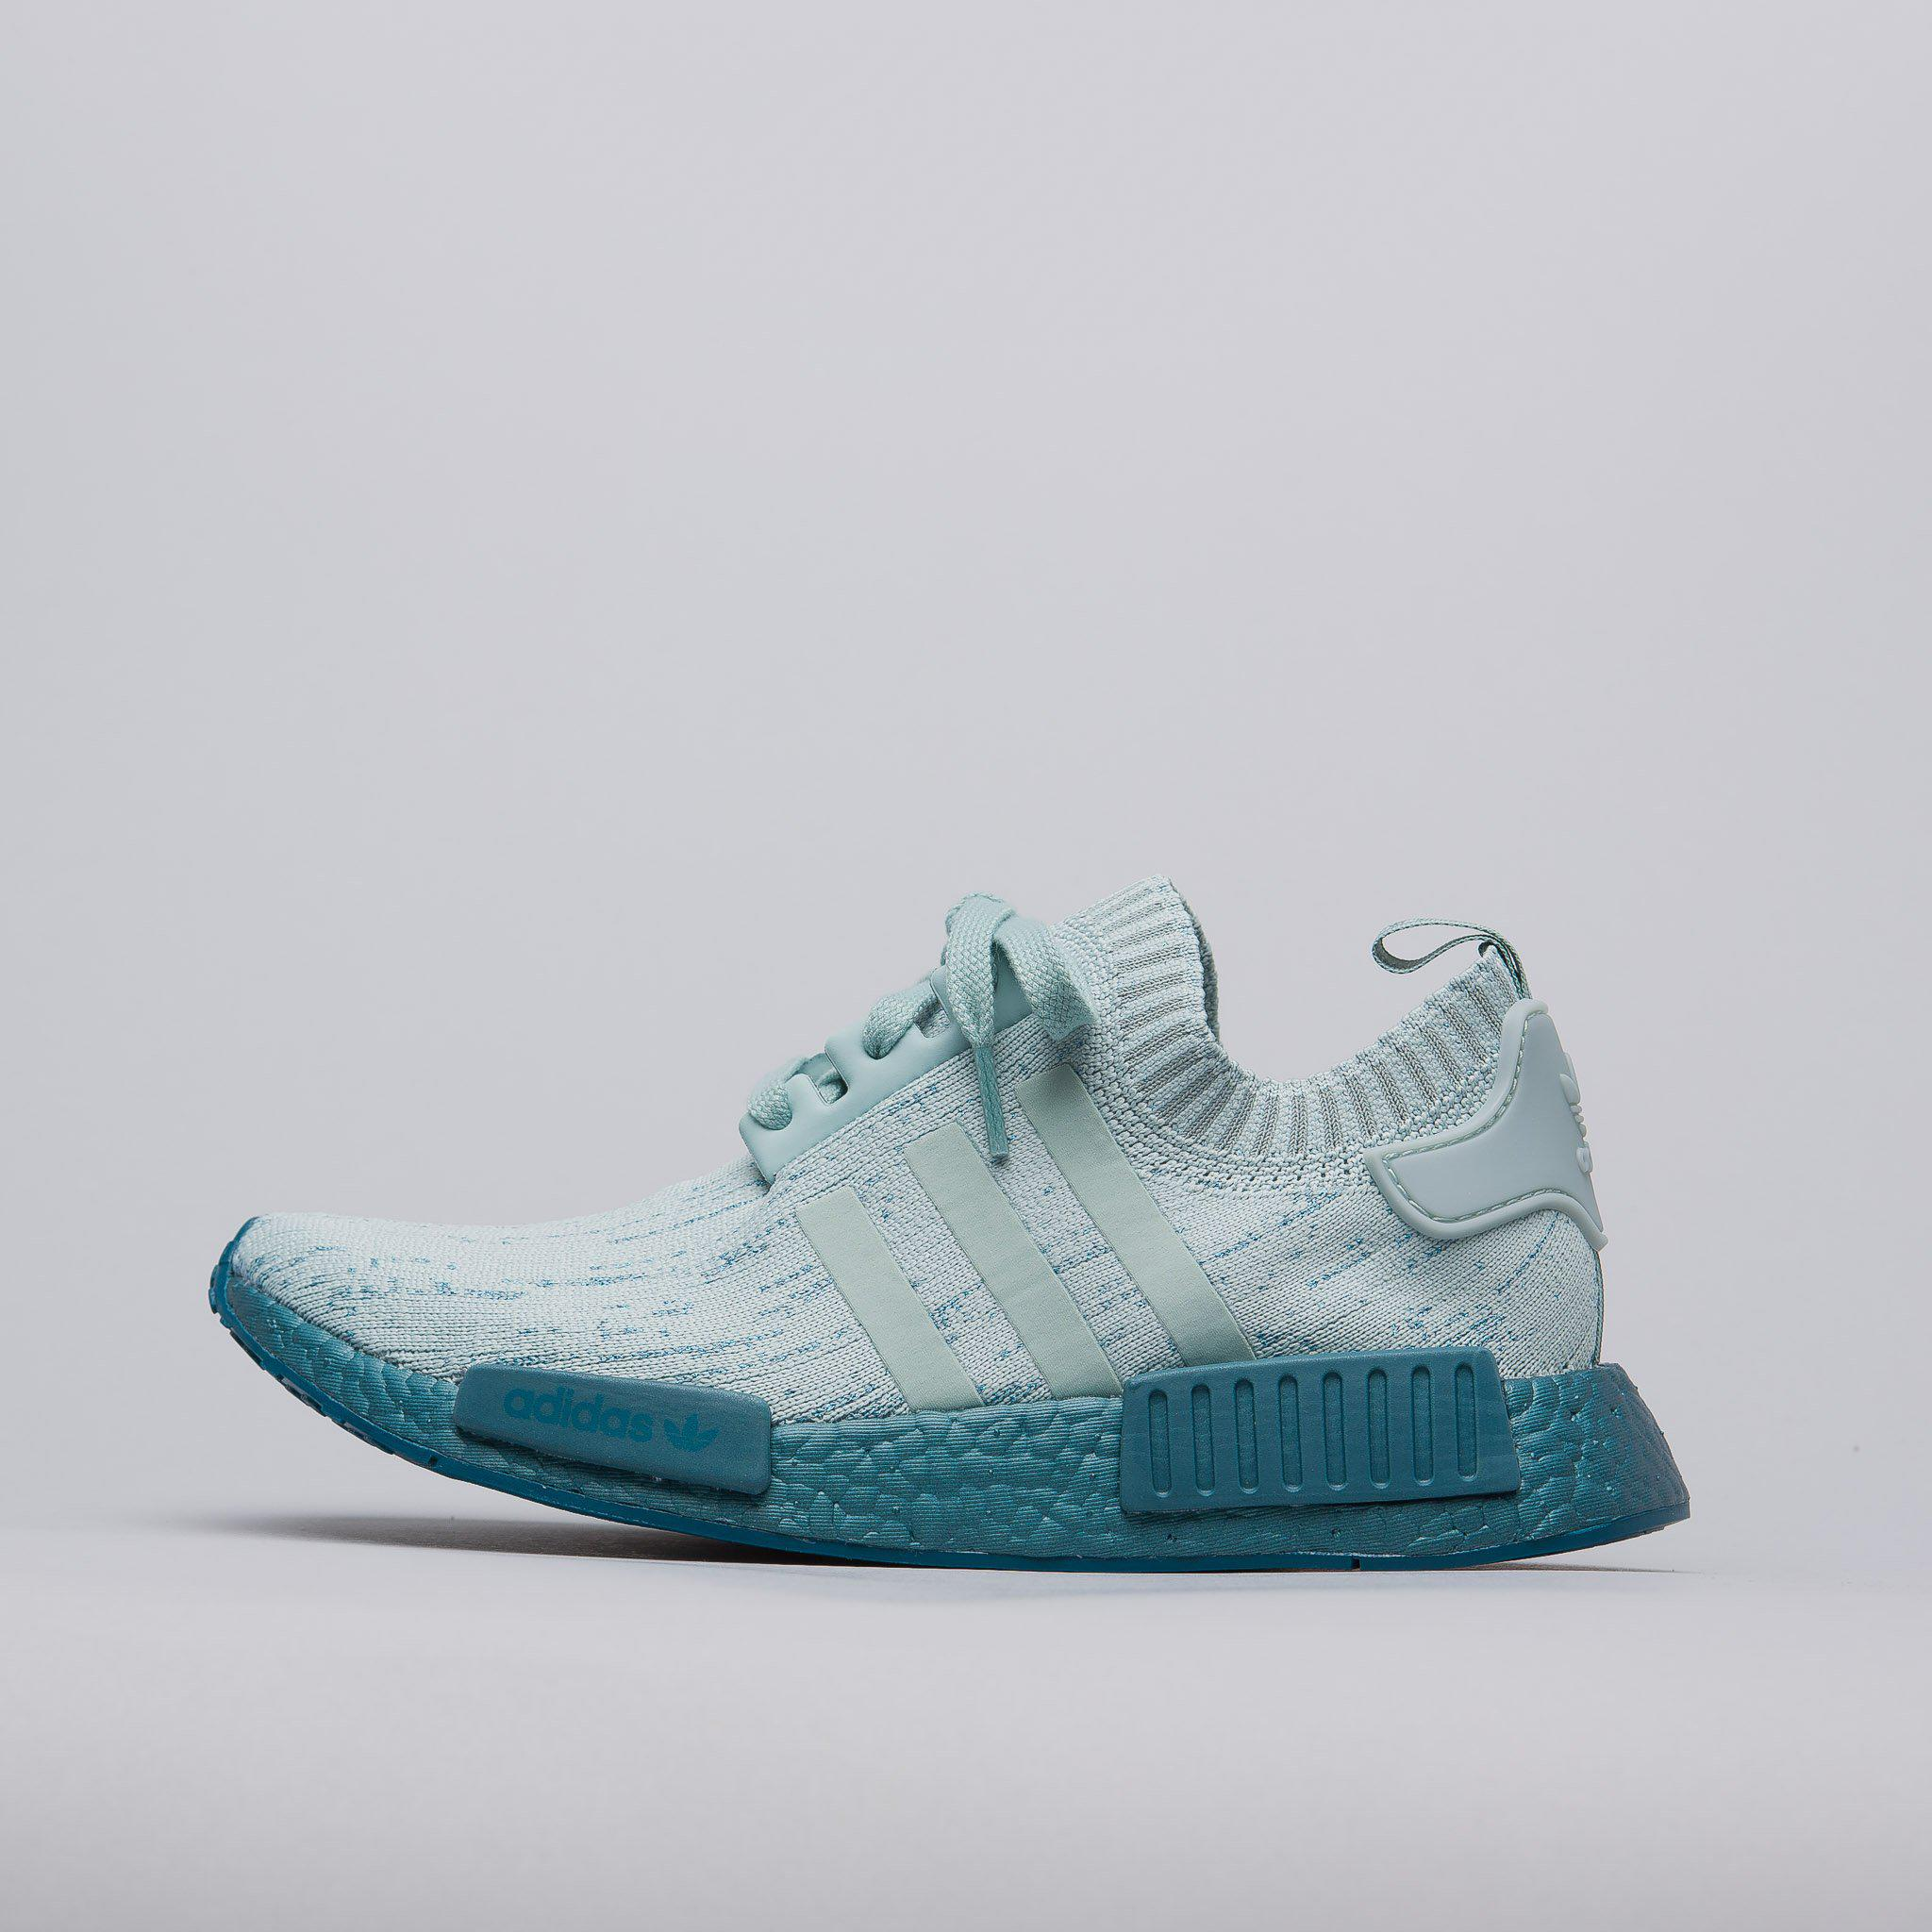 b432f74a4 ... release date lyst adidas womens nmd r1 primeknit in tactile green in  green for men 2bcd8